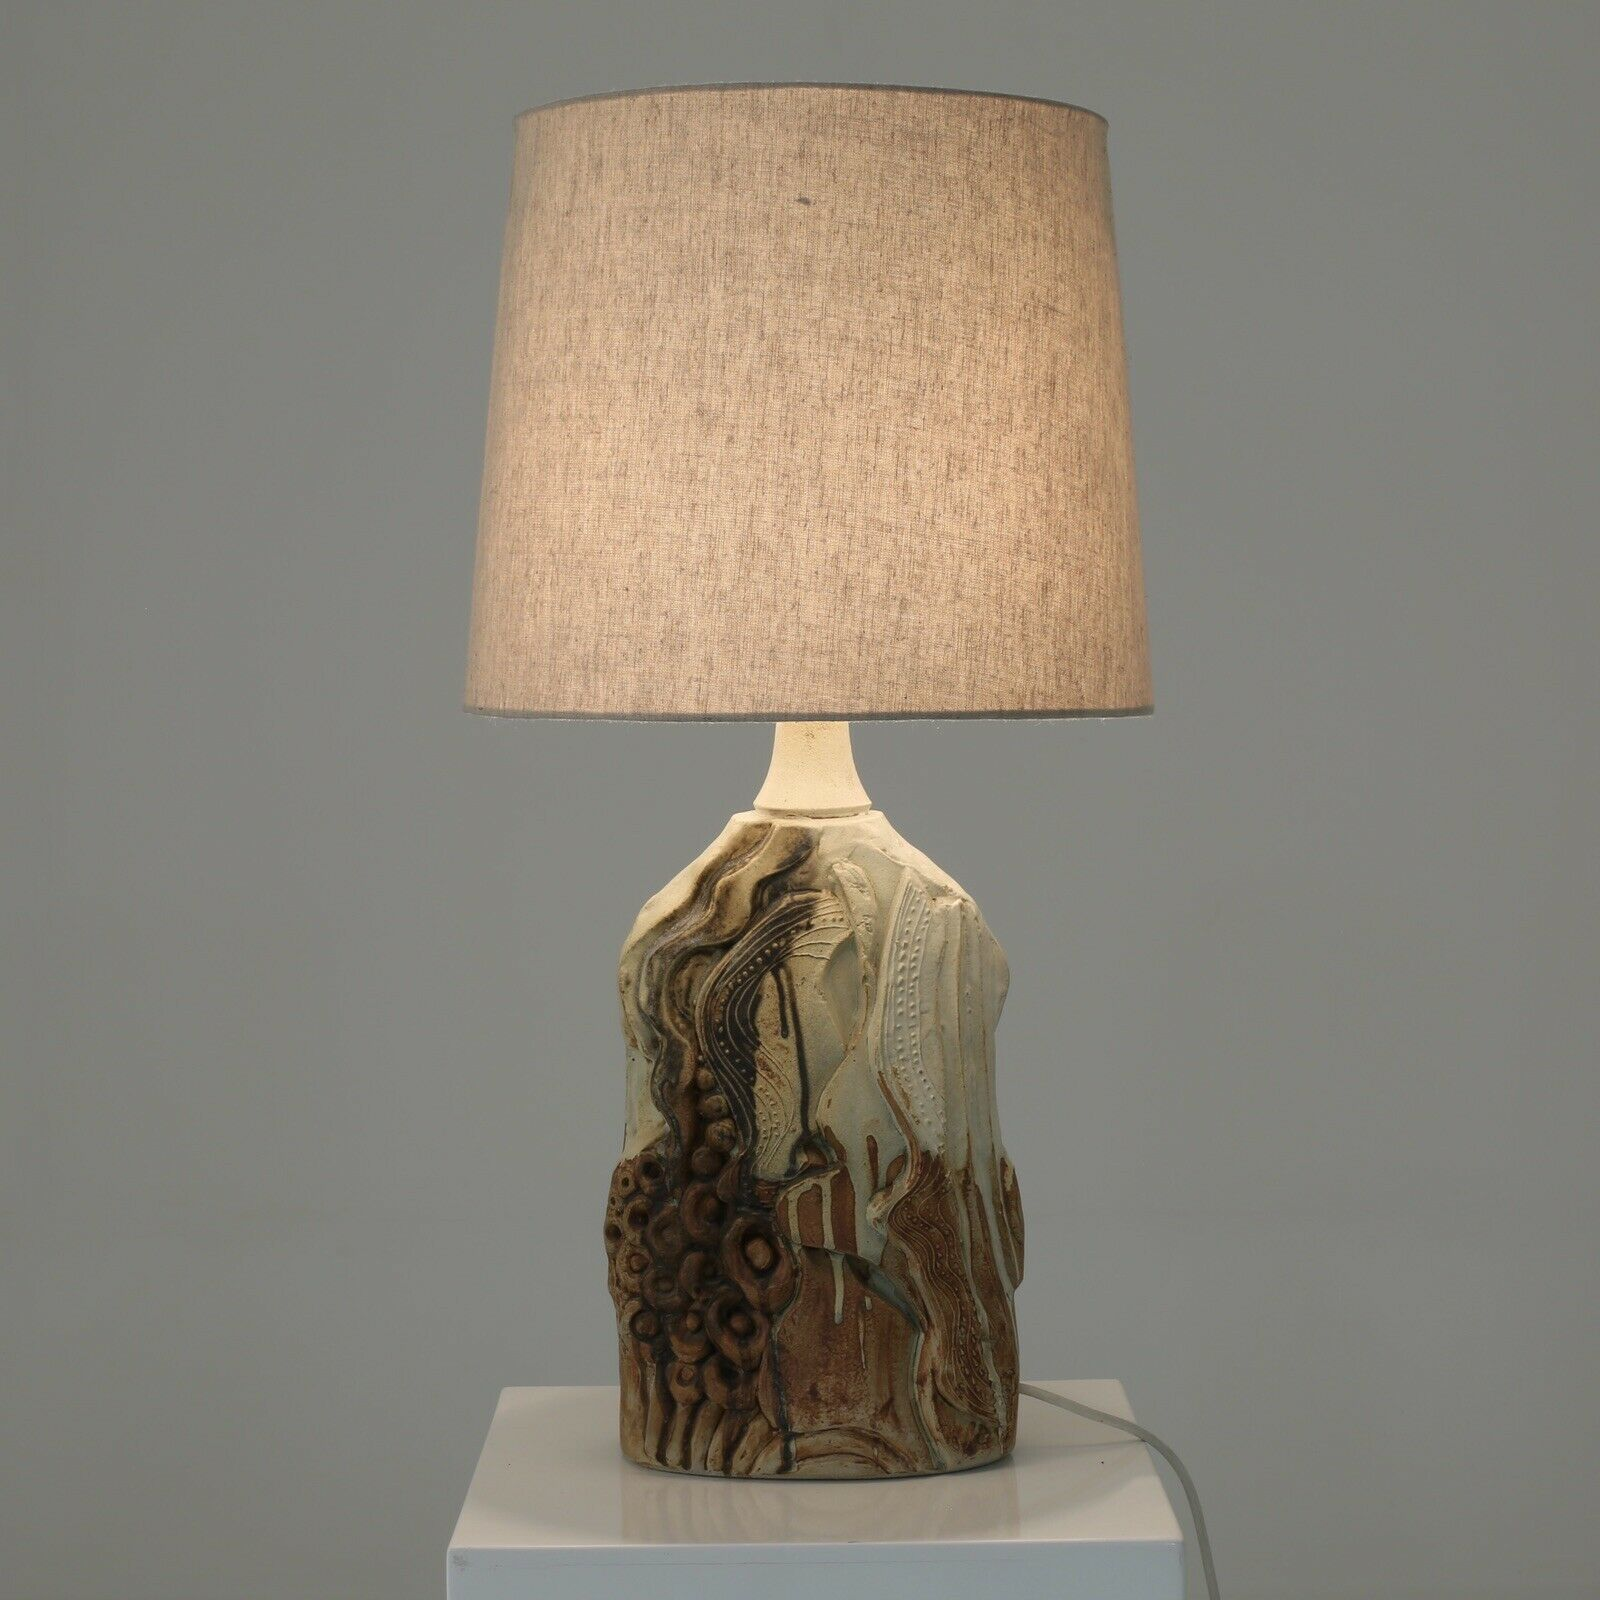 Midcentury Bernard Rooke Studio Pottery Table Lamp Ceramic Stoneware 1960s Retro